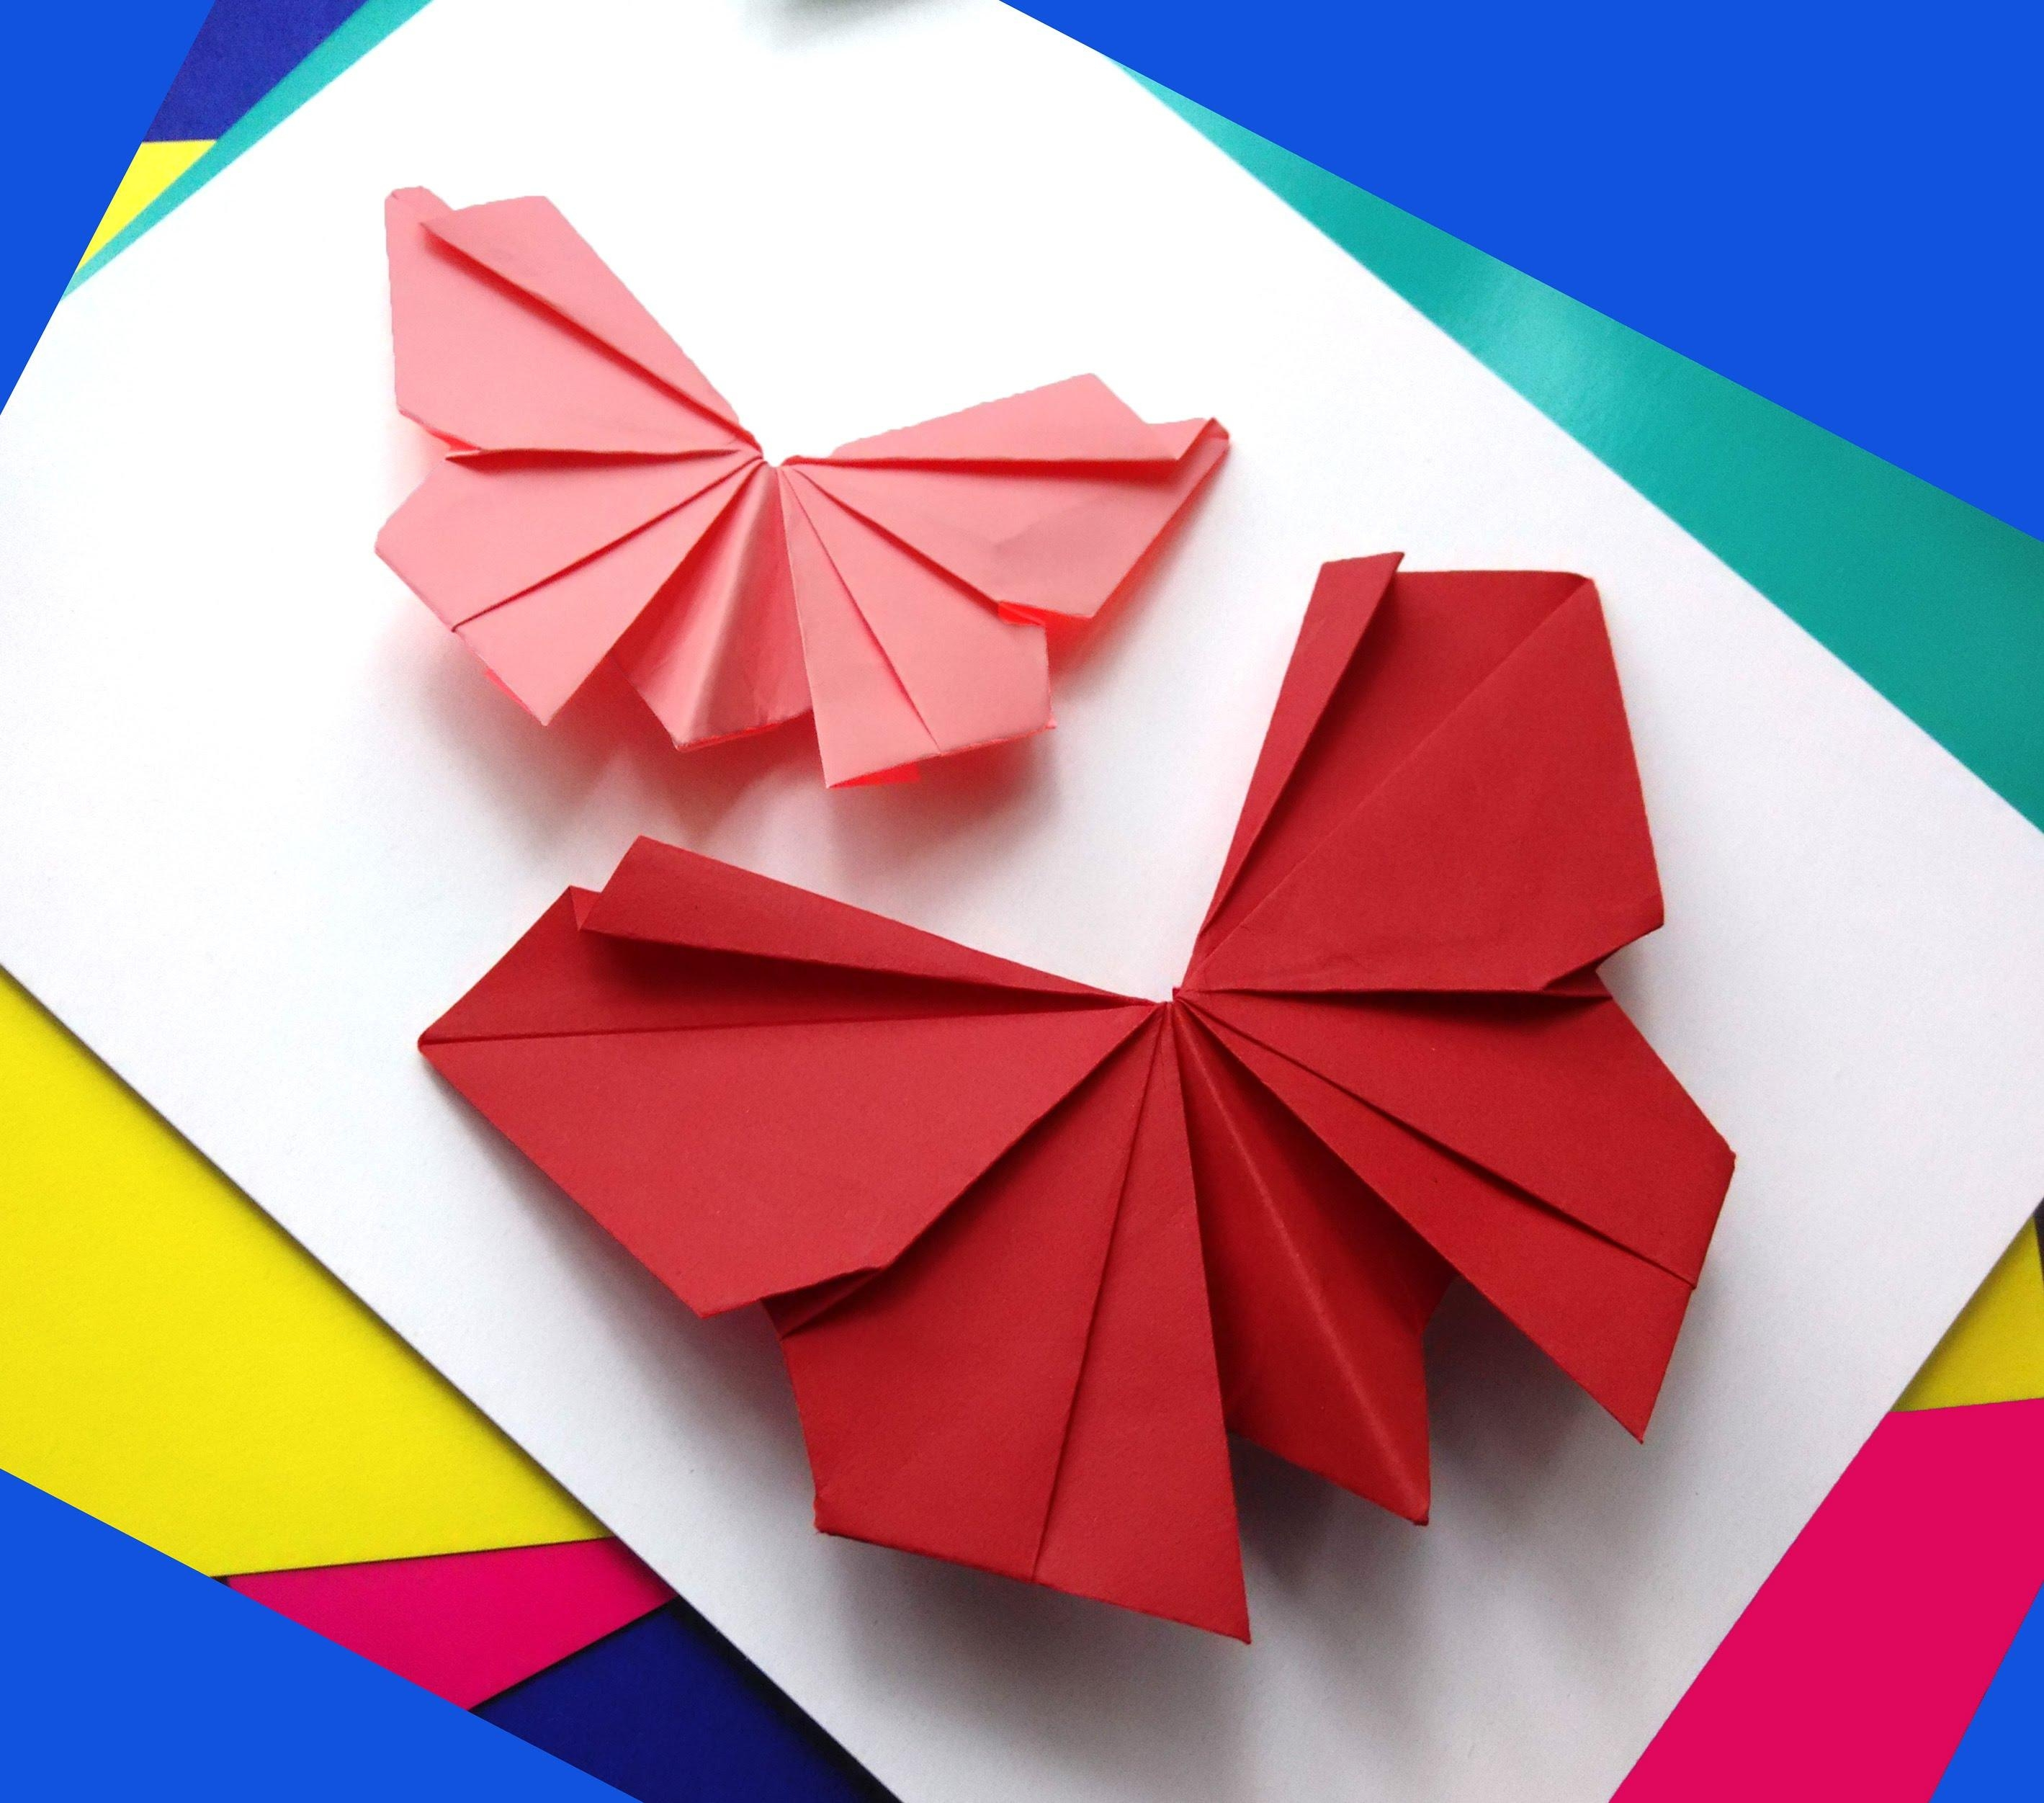 20 inspirations diy origami wall art wall art ideas for Diy paper origami